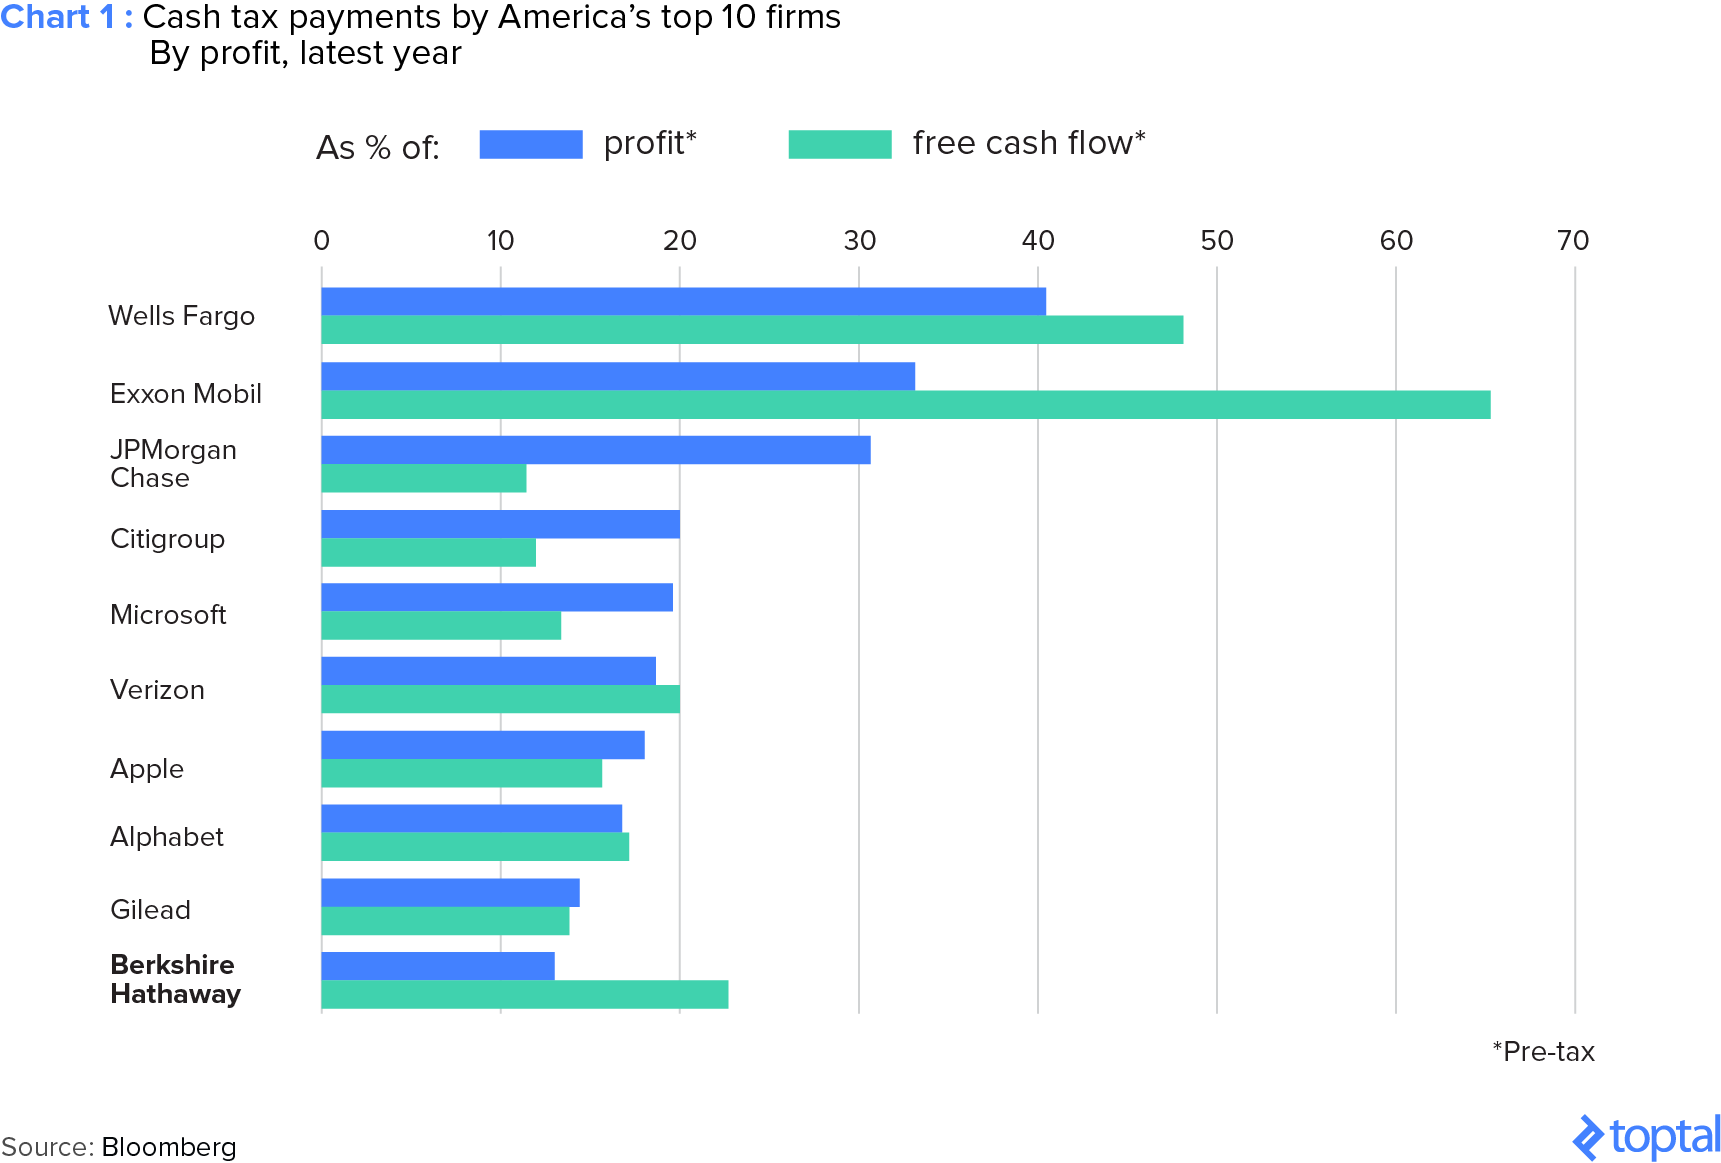 Chart 1: Cash Tax Payments by America's Top 10 Firms by Profit, Latest Year